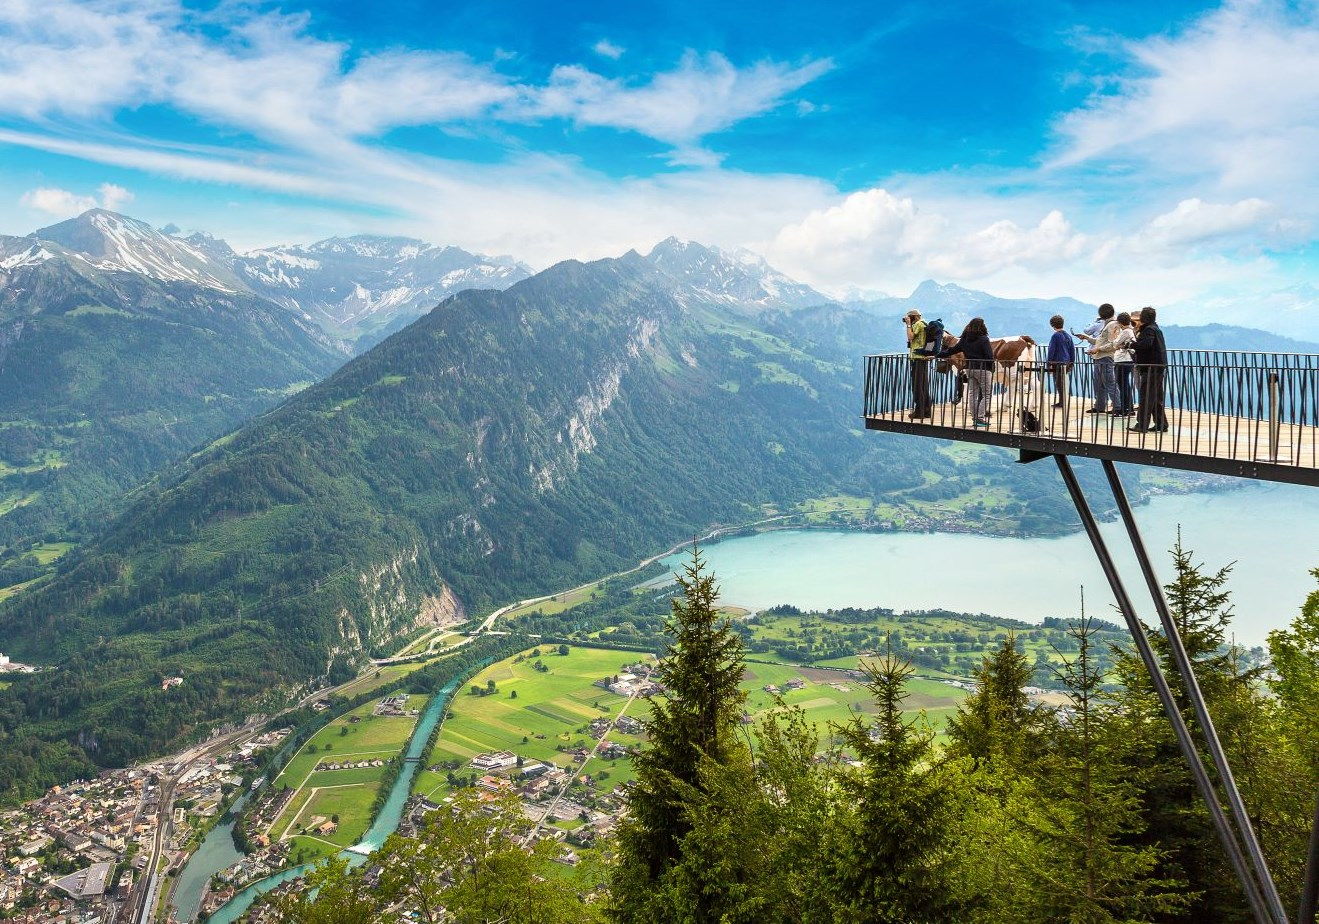 Imagine your next holiday to ... Switserland